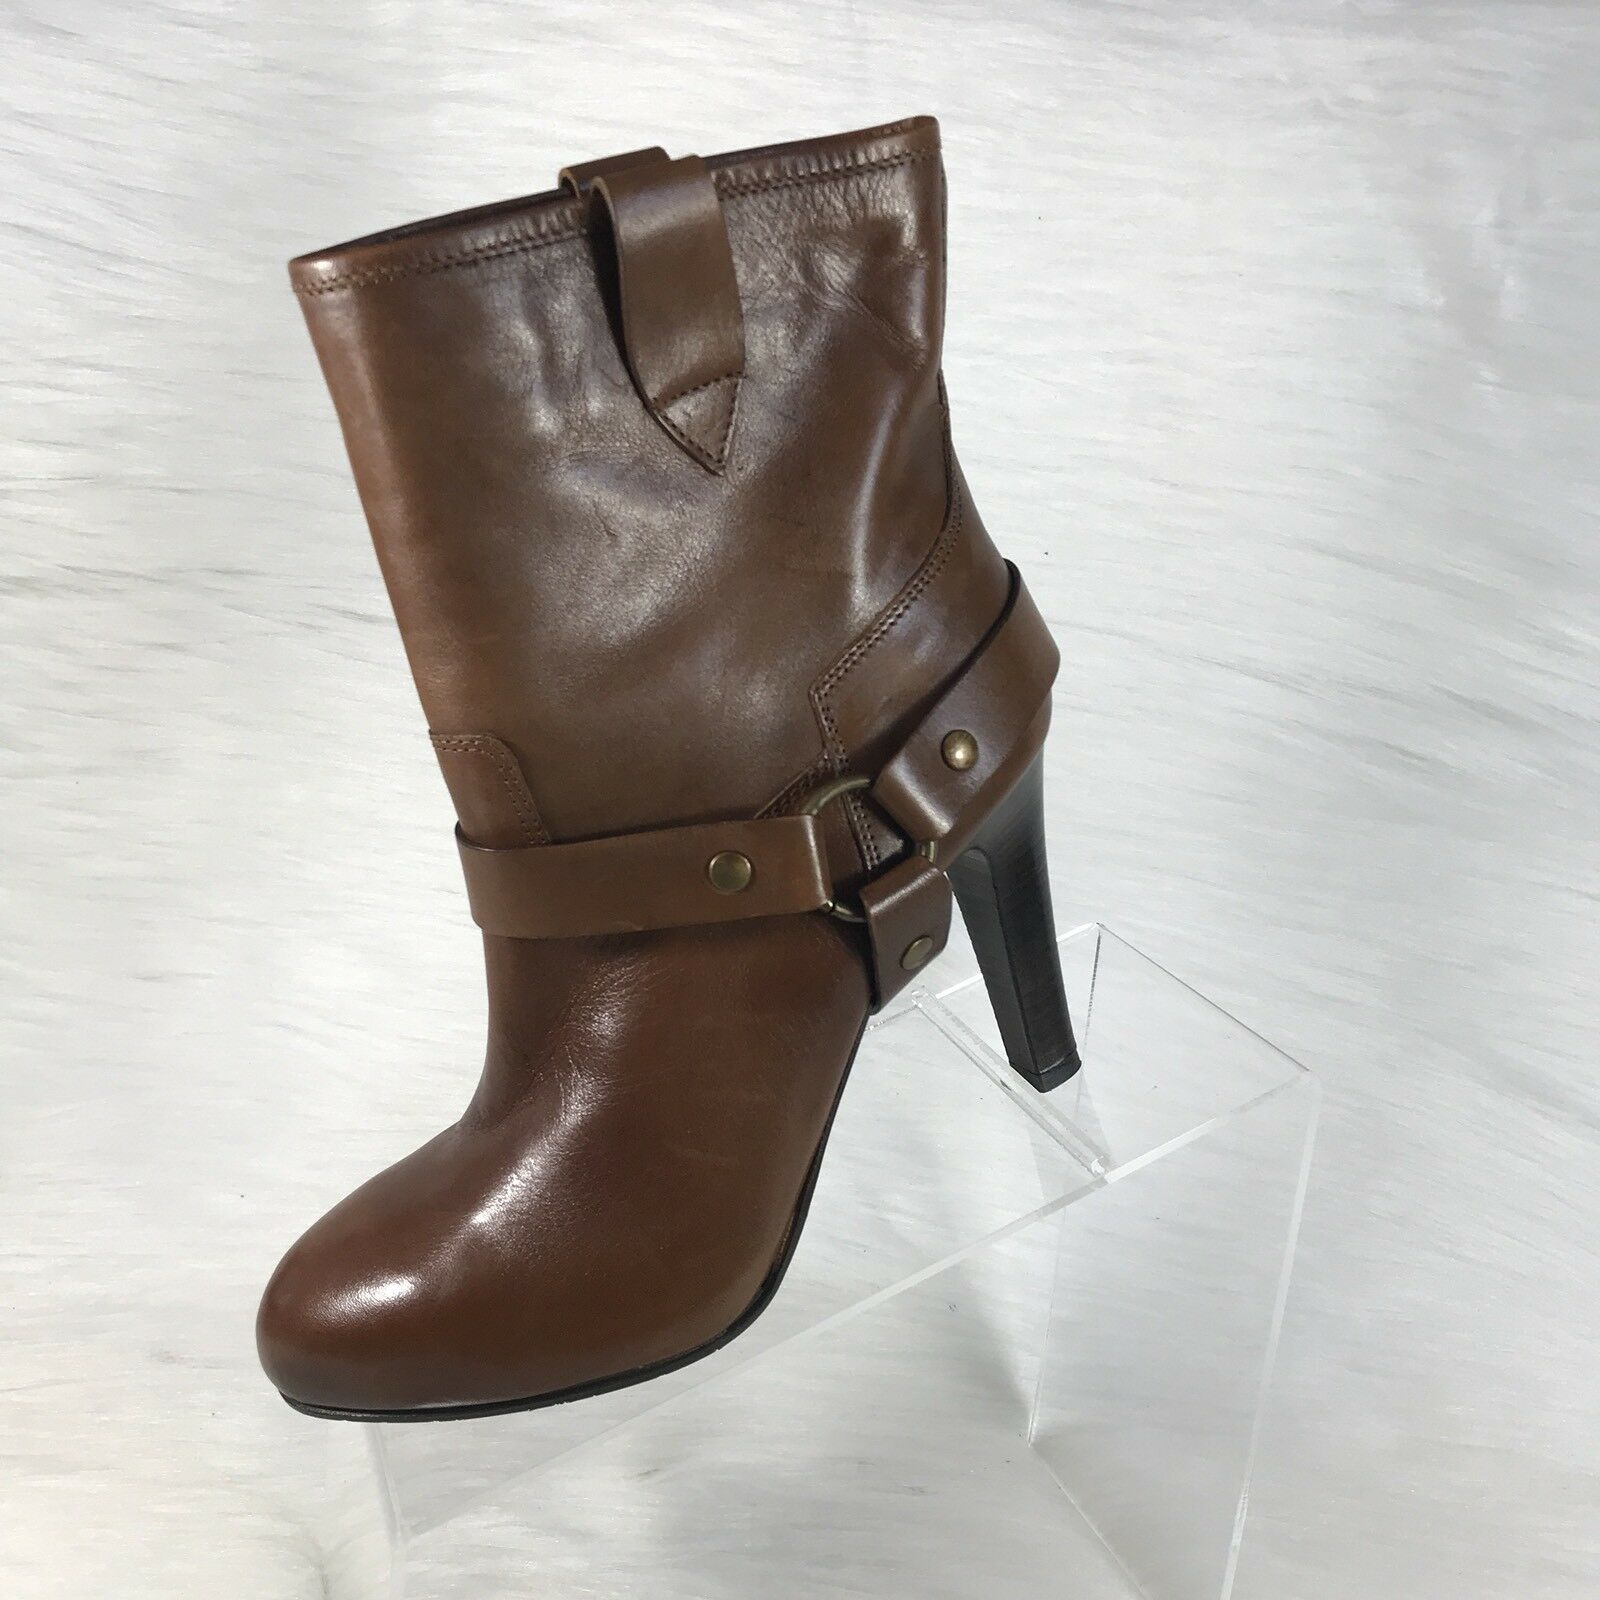 Progetto Women's Ankle Boots Brown Leather Heels Straps Detail Size 38 US 8